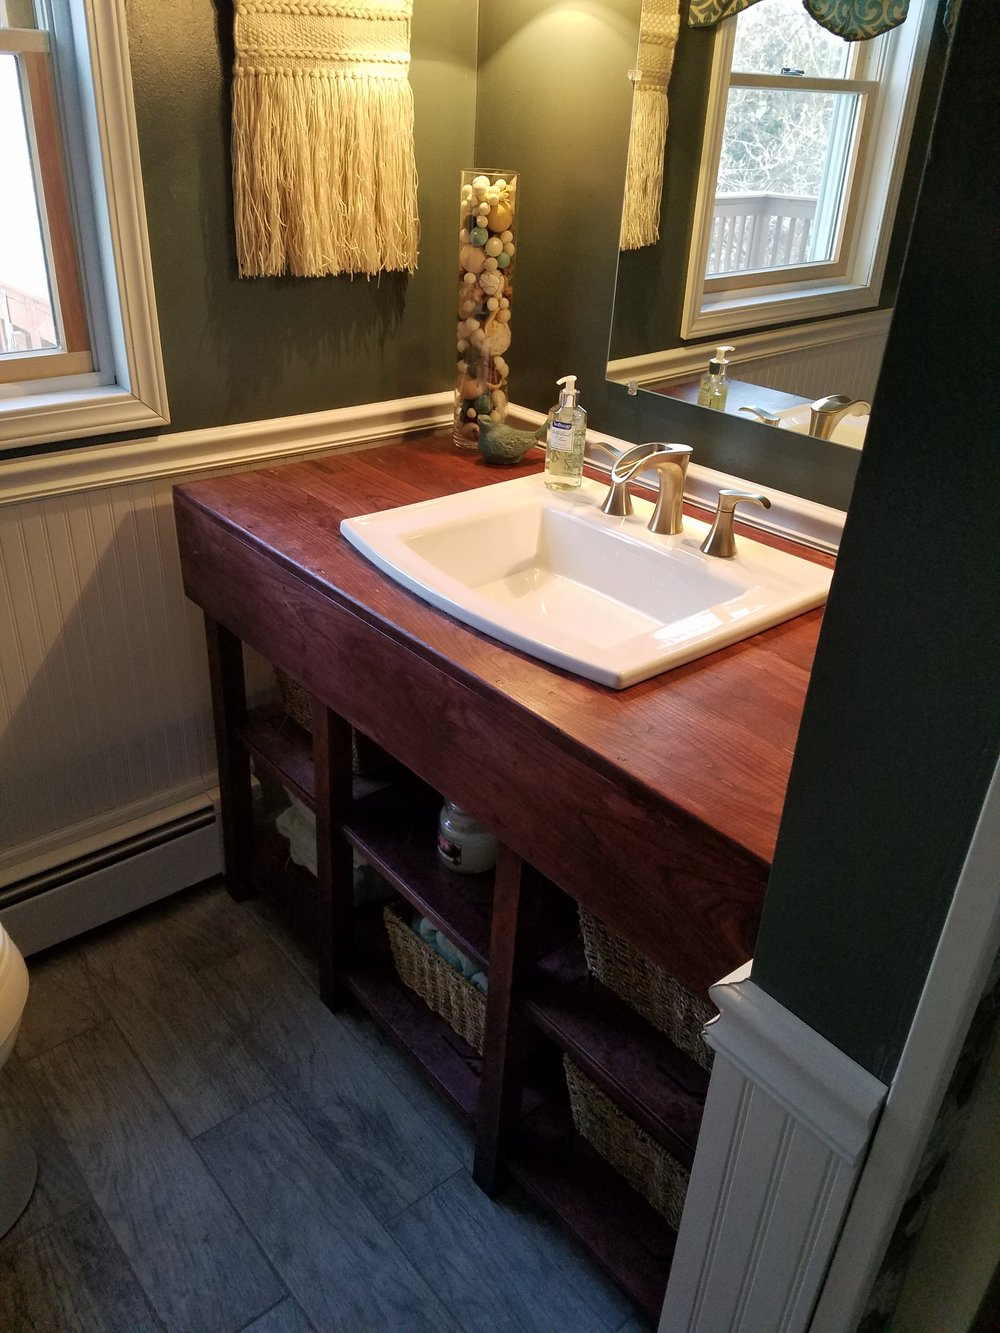 The cost for THIS specific custom vanity pictured on this page is $1950.00 ... your custom design can be loosely associated with the size and features of the vanity outlined here. If you have interest in a custom vanity construction featuring THIS design ... please contact KÄRV for pricing and delivery information. Due to the size and weight of custom designed vanities ... shipping is not available and delivery must be via physical pick-up only from the KÄRV workshop in Massachusetts.